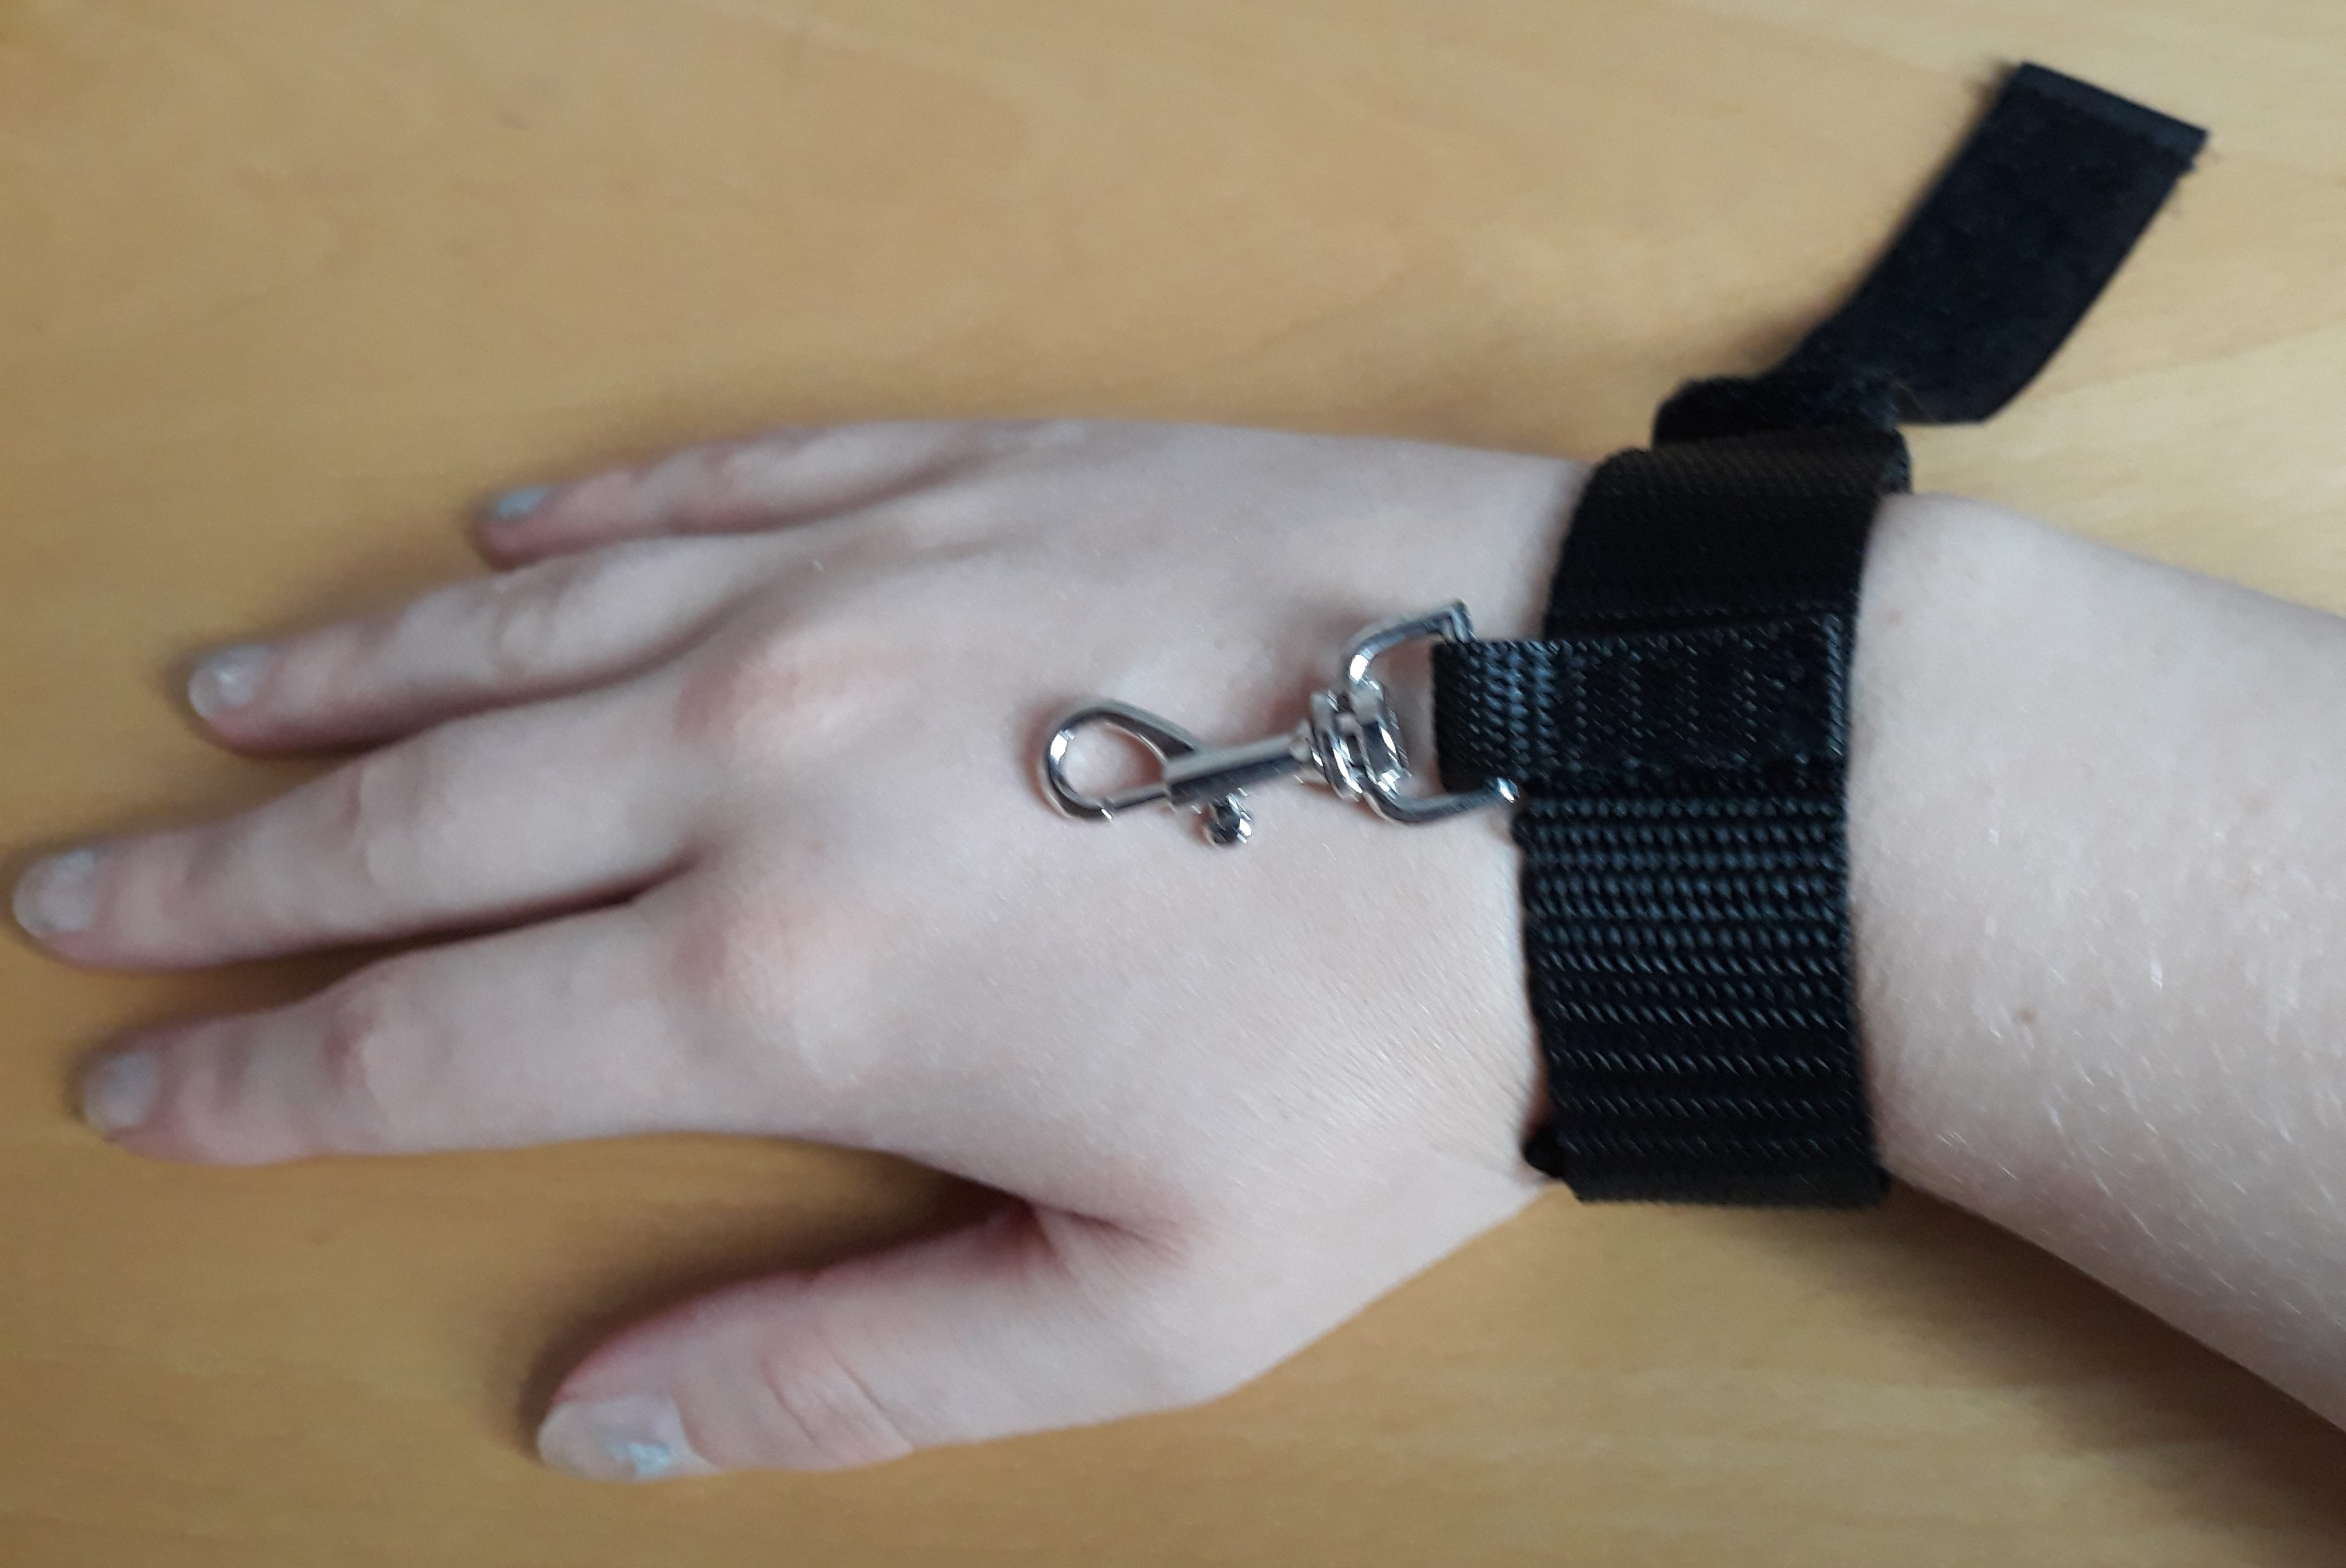 A woman's hand in a black velcro cuff. For a post about the Take Control bondage kit.